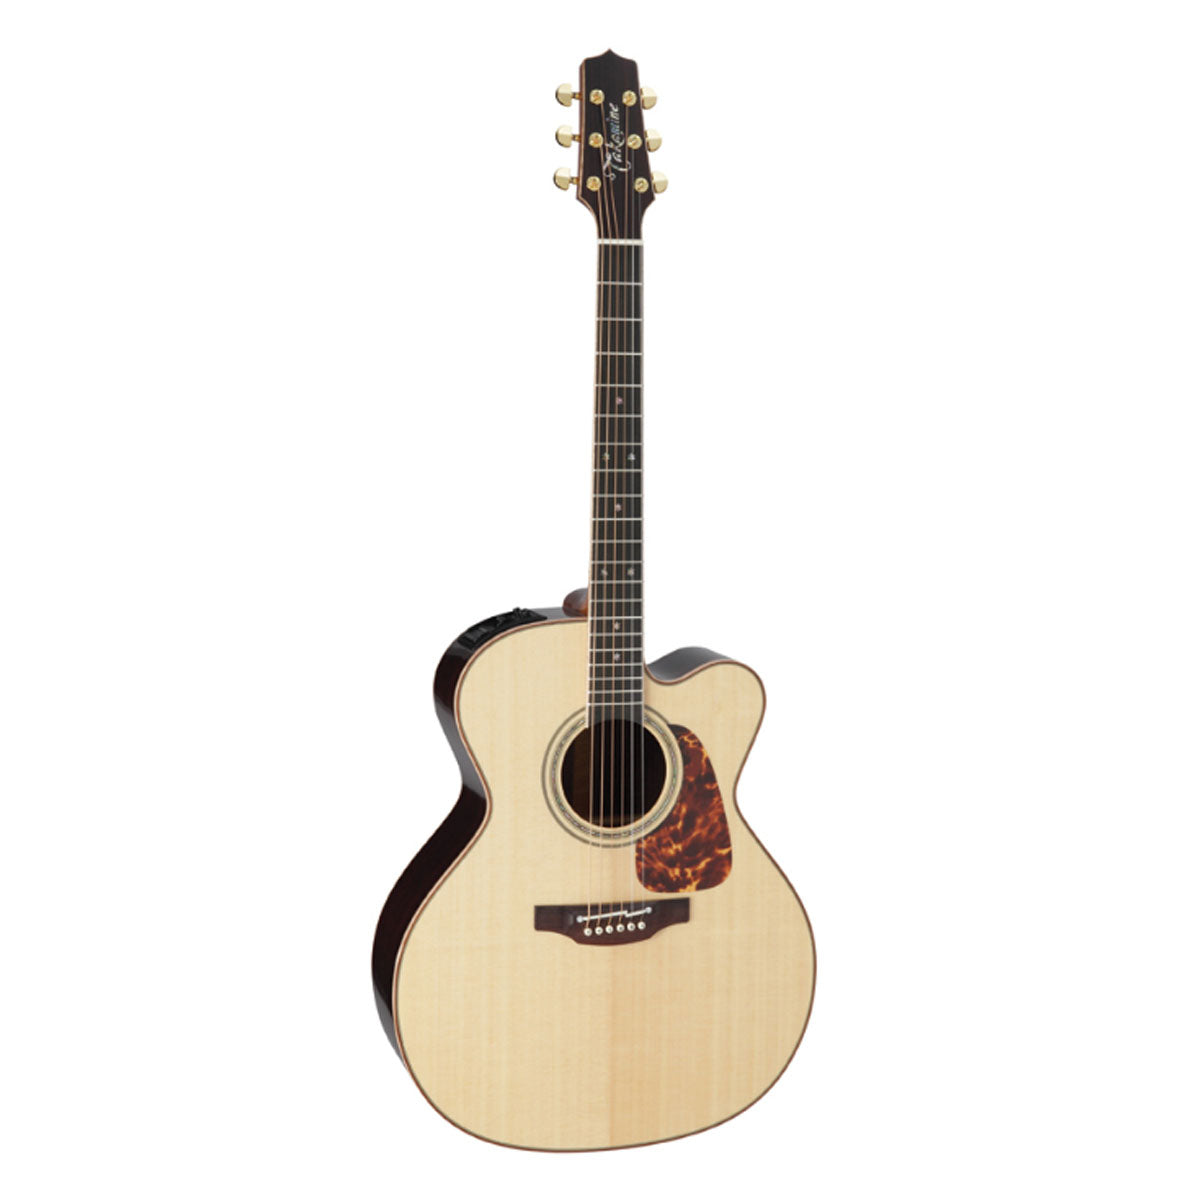 Takamine P7JC Pro Series 7 Acoustic Guitar Jumbo Natural w/ Pickup